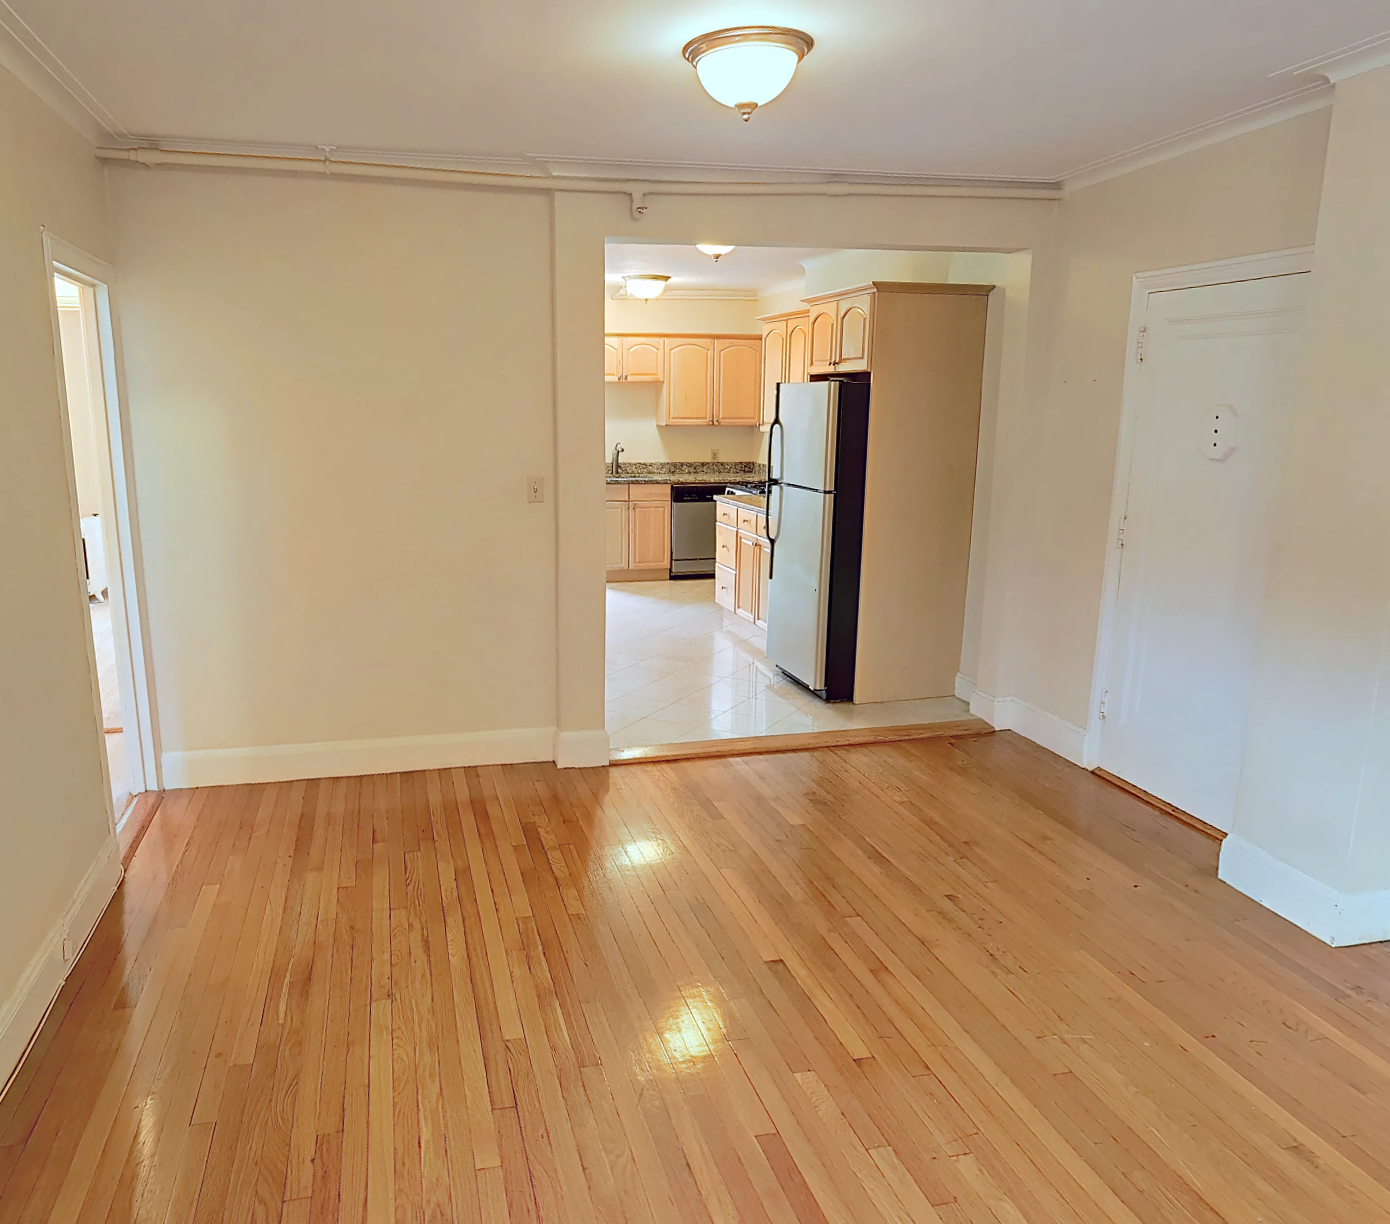 2 Beds, 1 Bath apartment in Brookline for $2,700